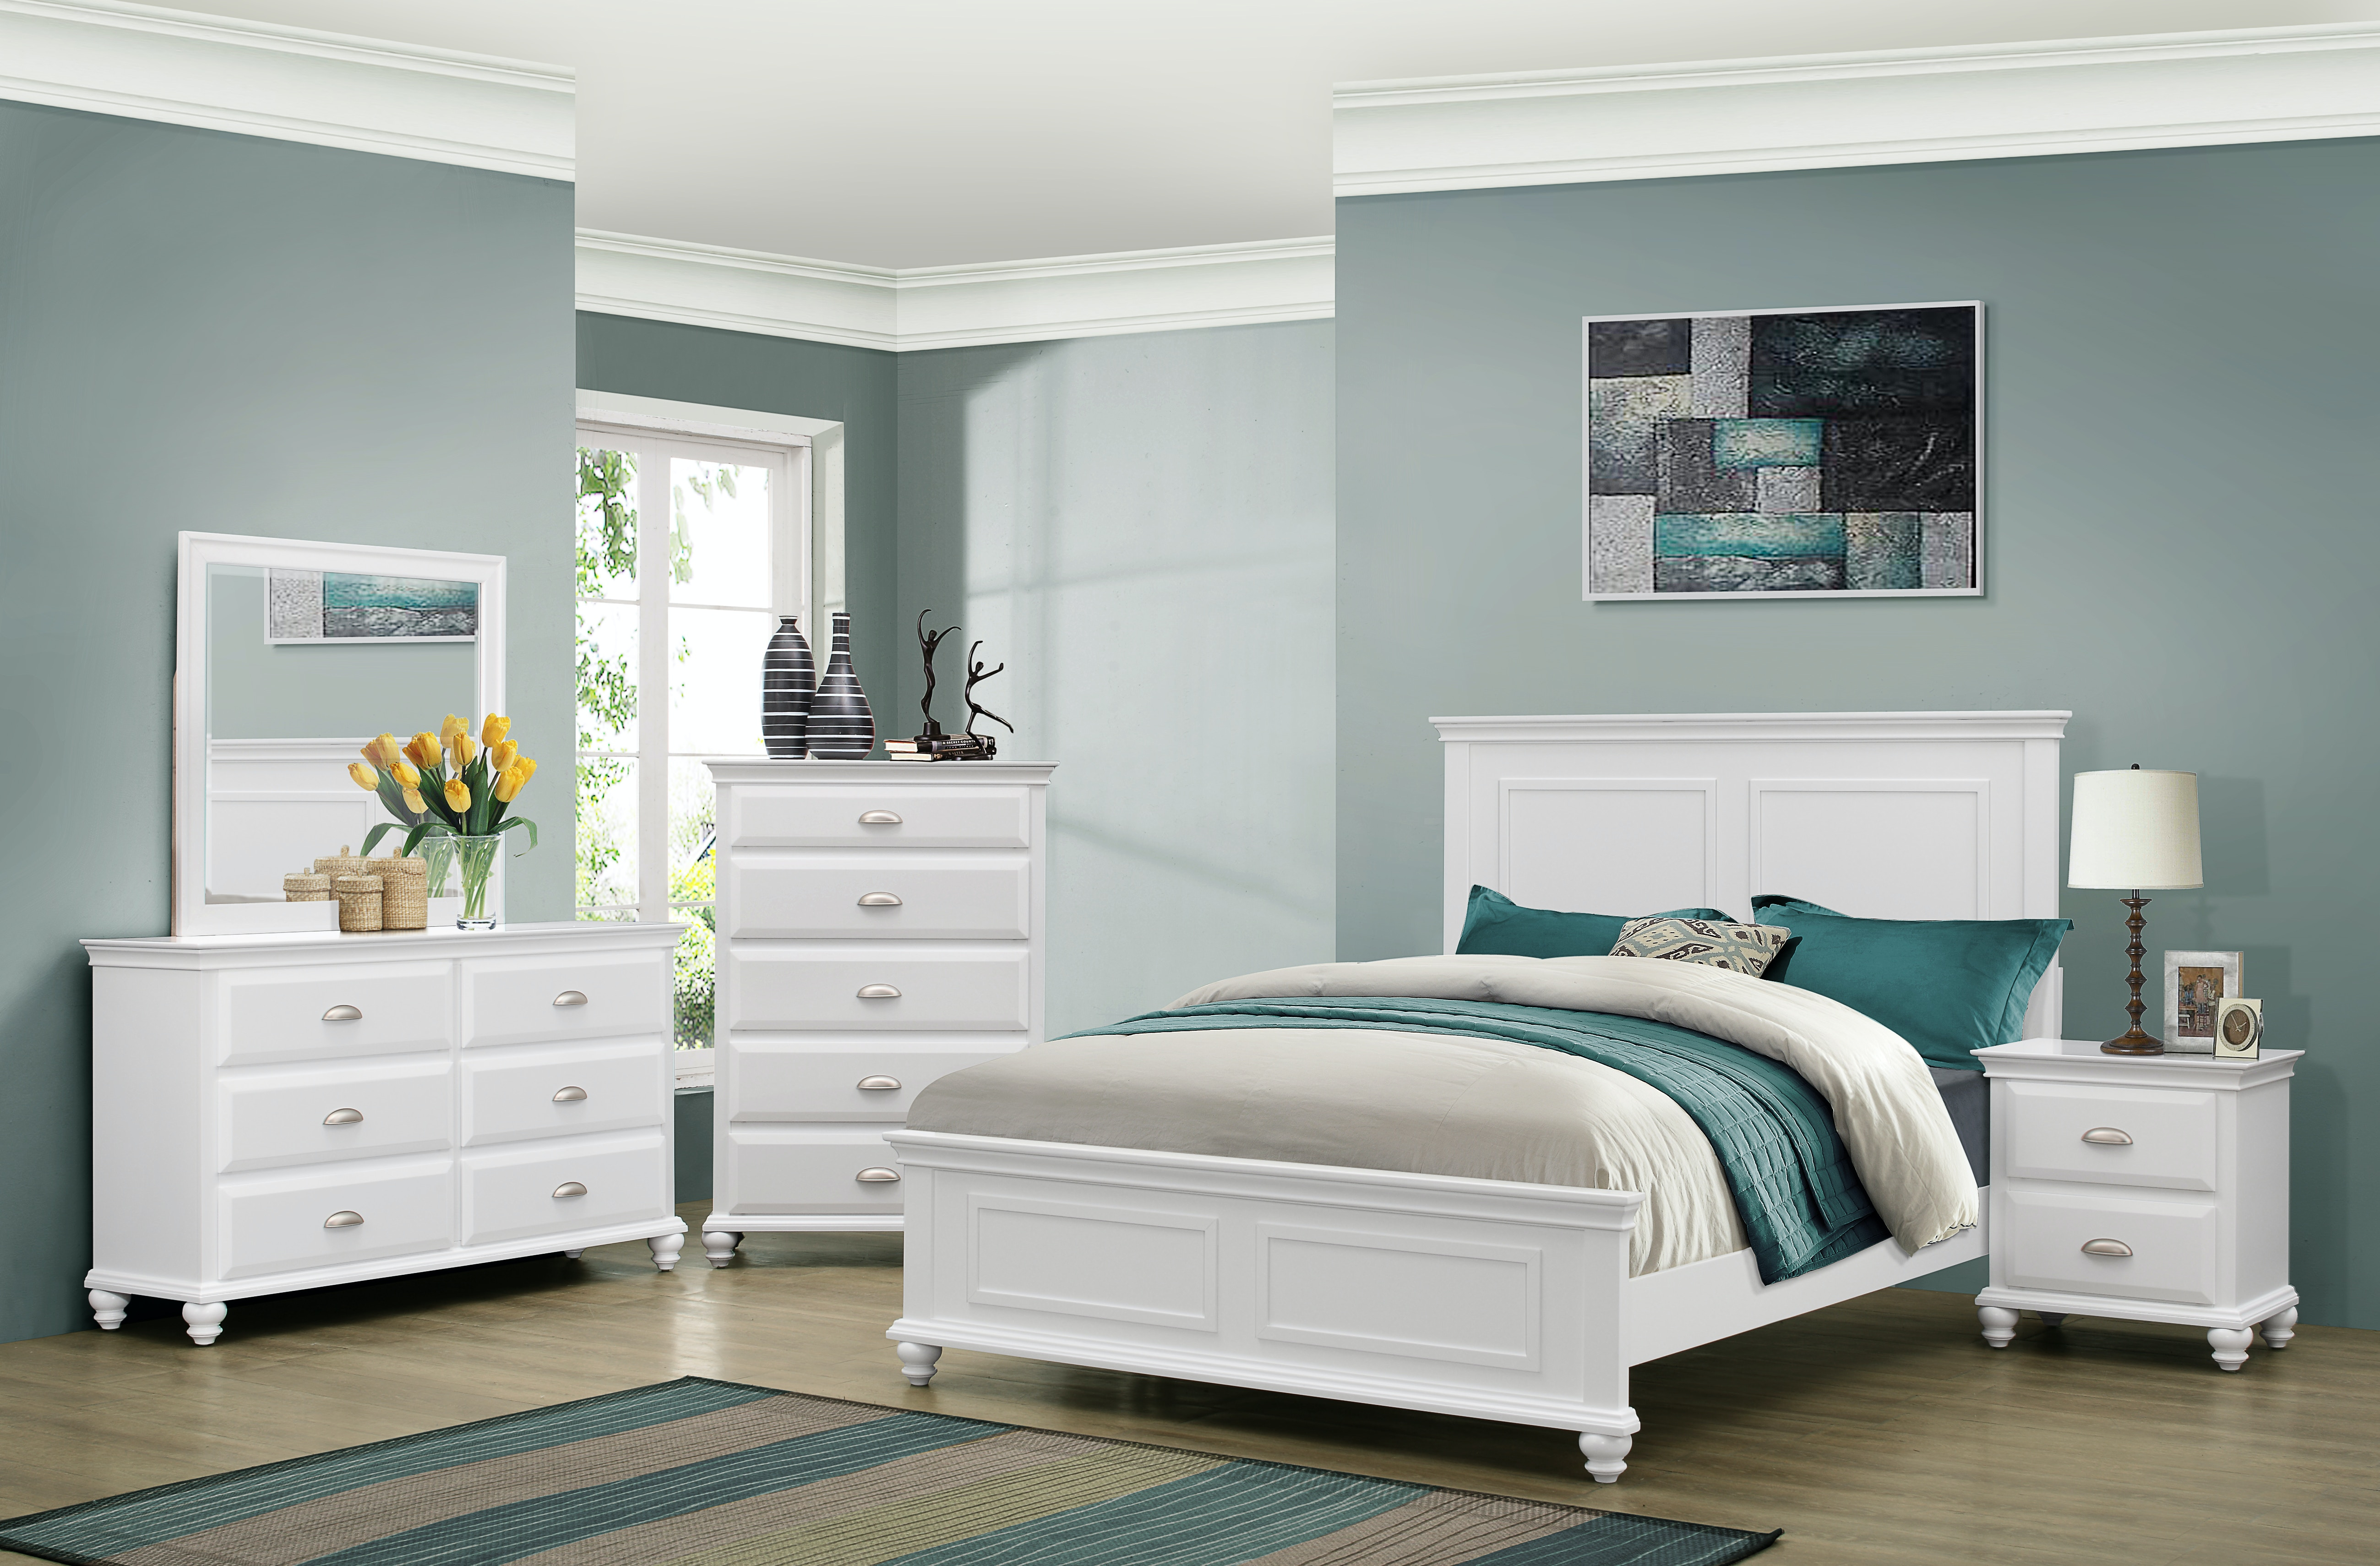 Charmant Simmons Upholstery U0026 Casegoods Queen Headboard U0026 Footboard 1009 Queen  Headboard/Footboard